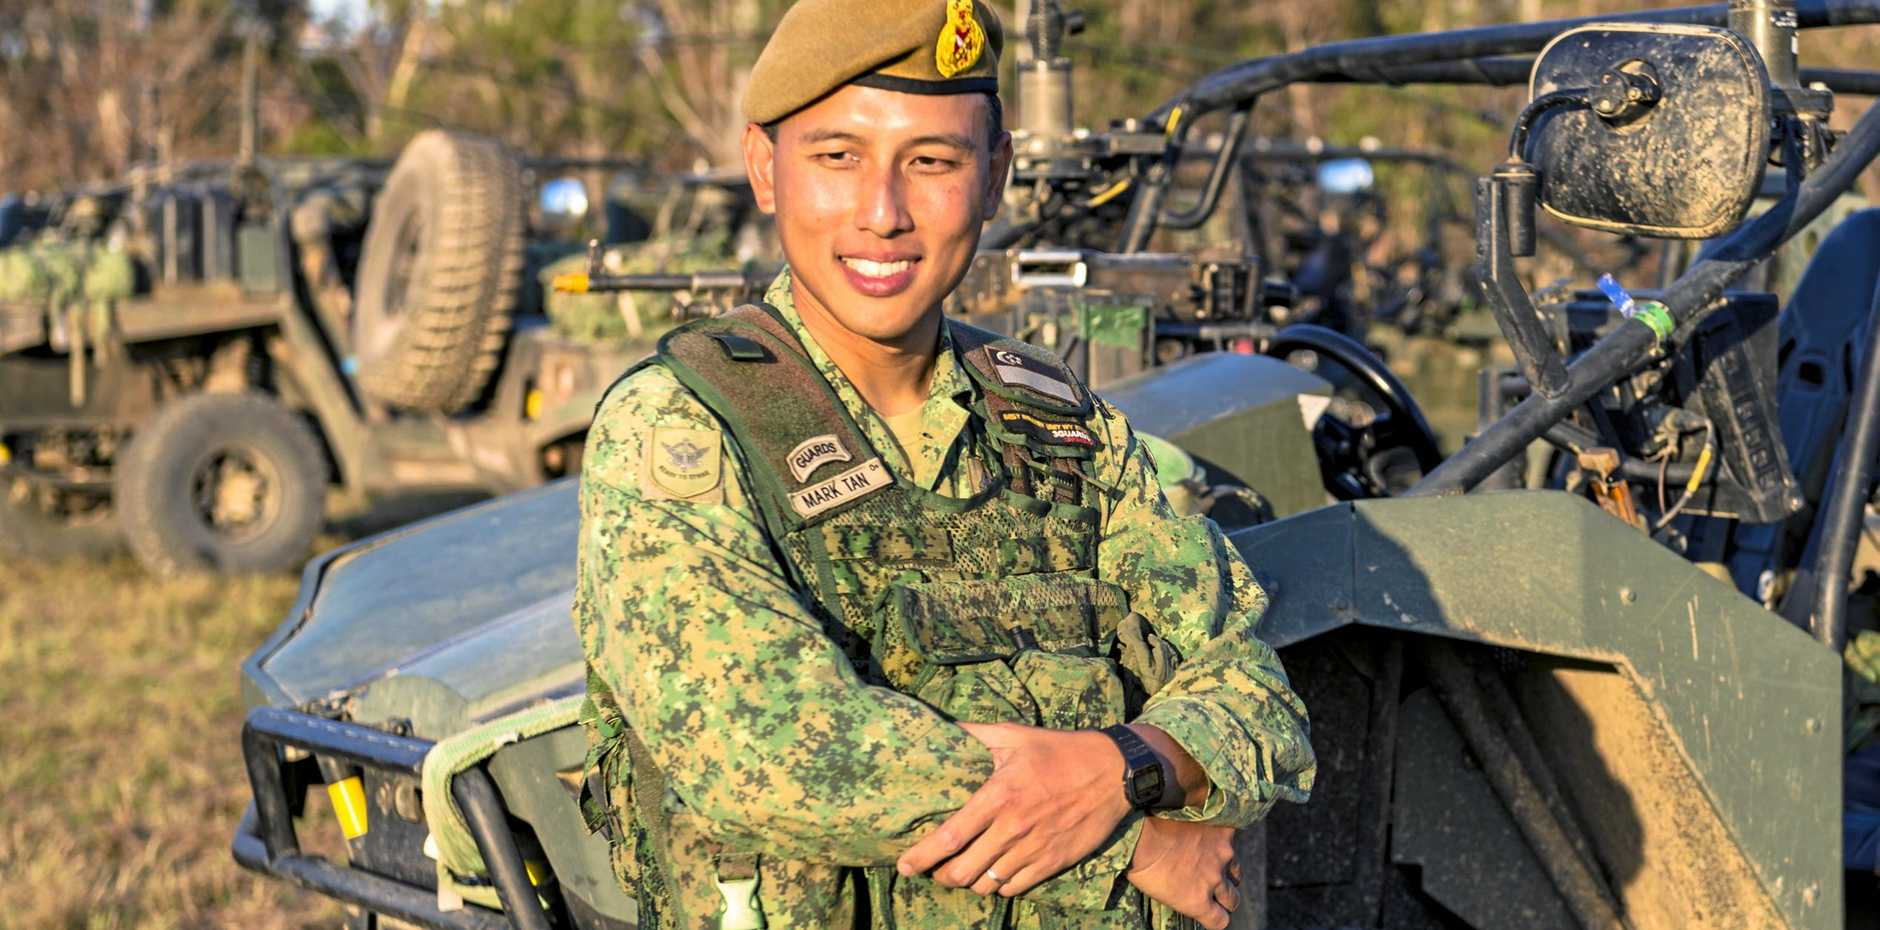 MASSIVE EXPANSION: Brigadier Mark Tan from the Singapore Armed Forces at Shoalwater Bay during Exercise Wallaby in 2017.